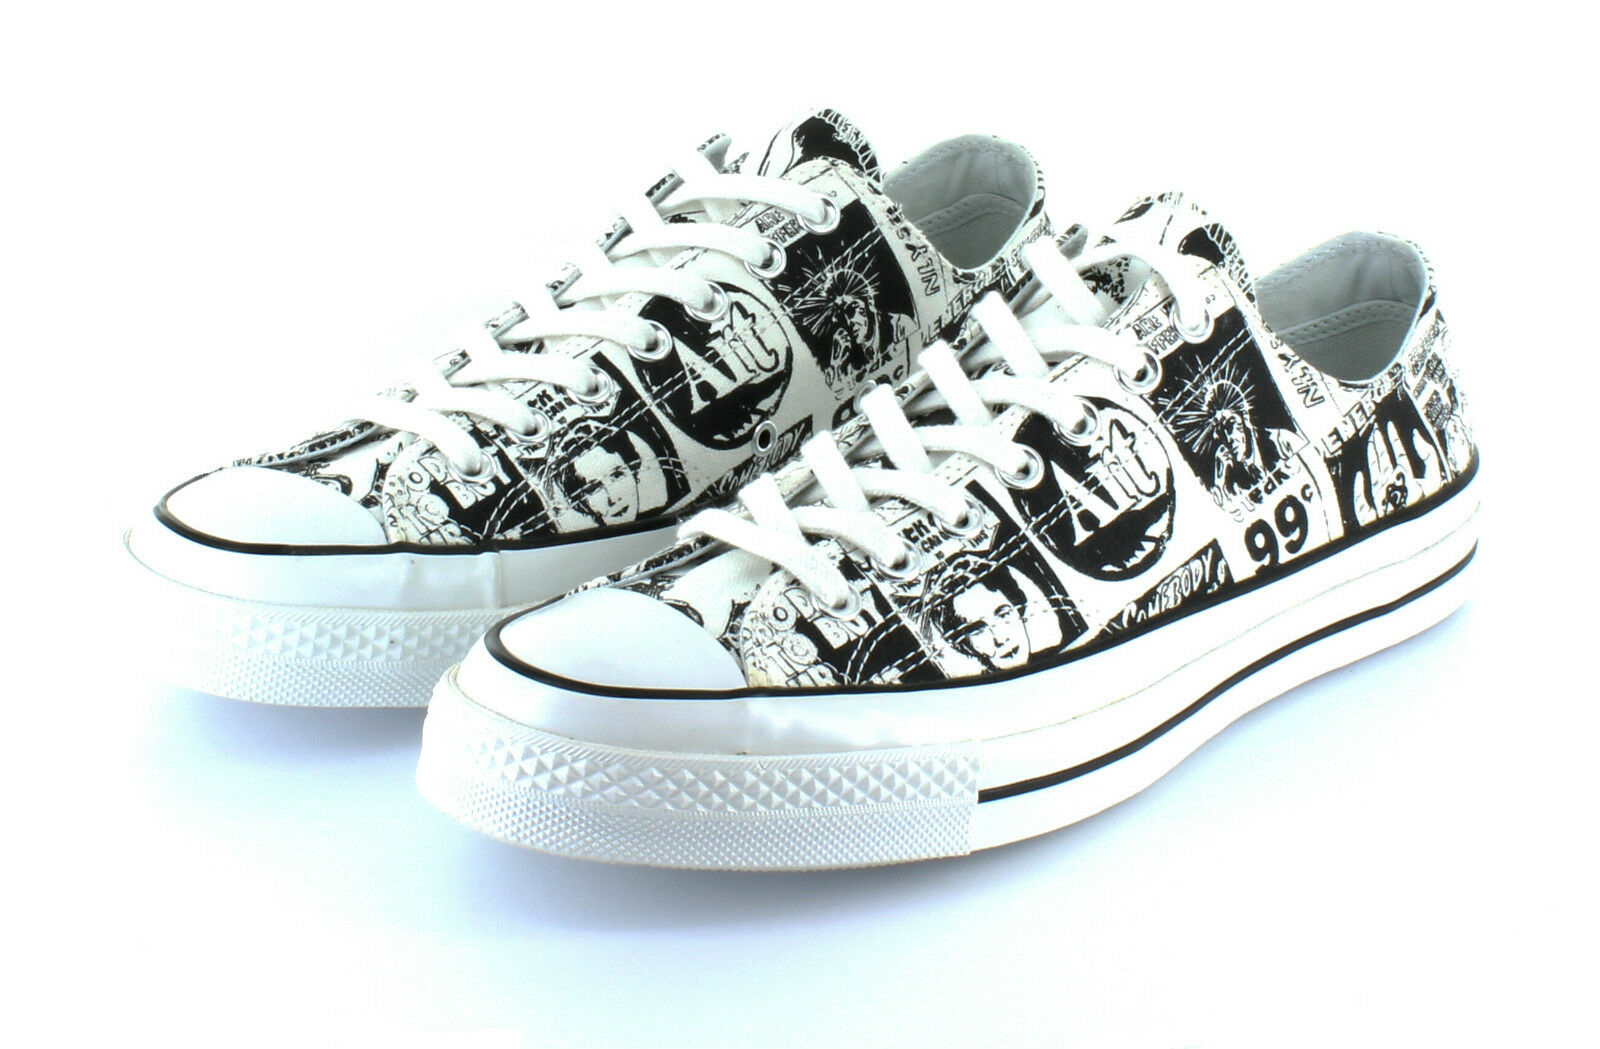 Converse CT AS 1970´s Ox White Powder Andy Warhol 42,5 / 43,5 US 9